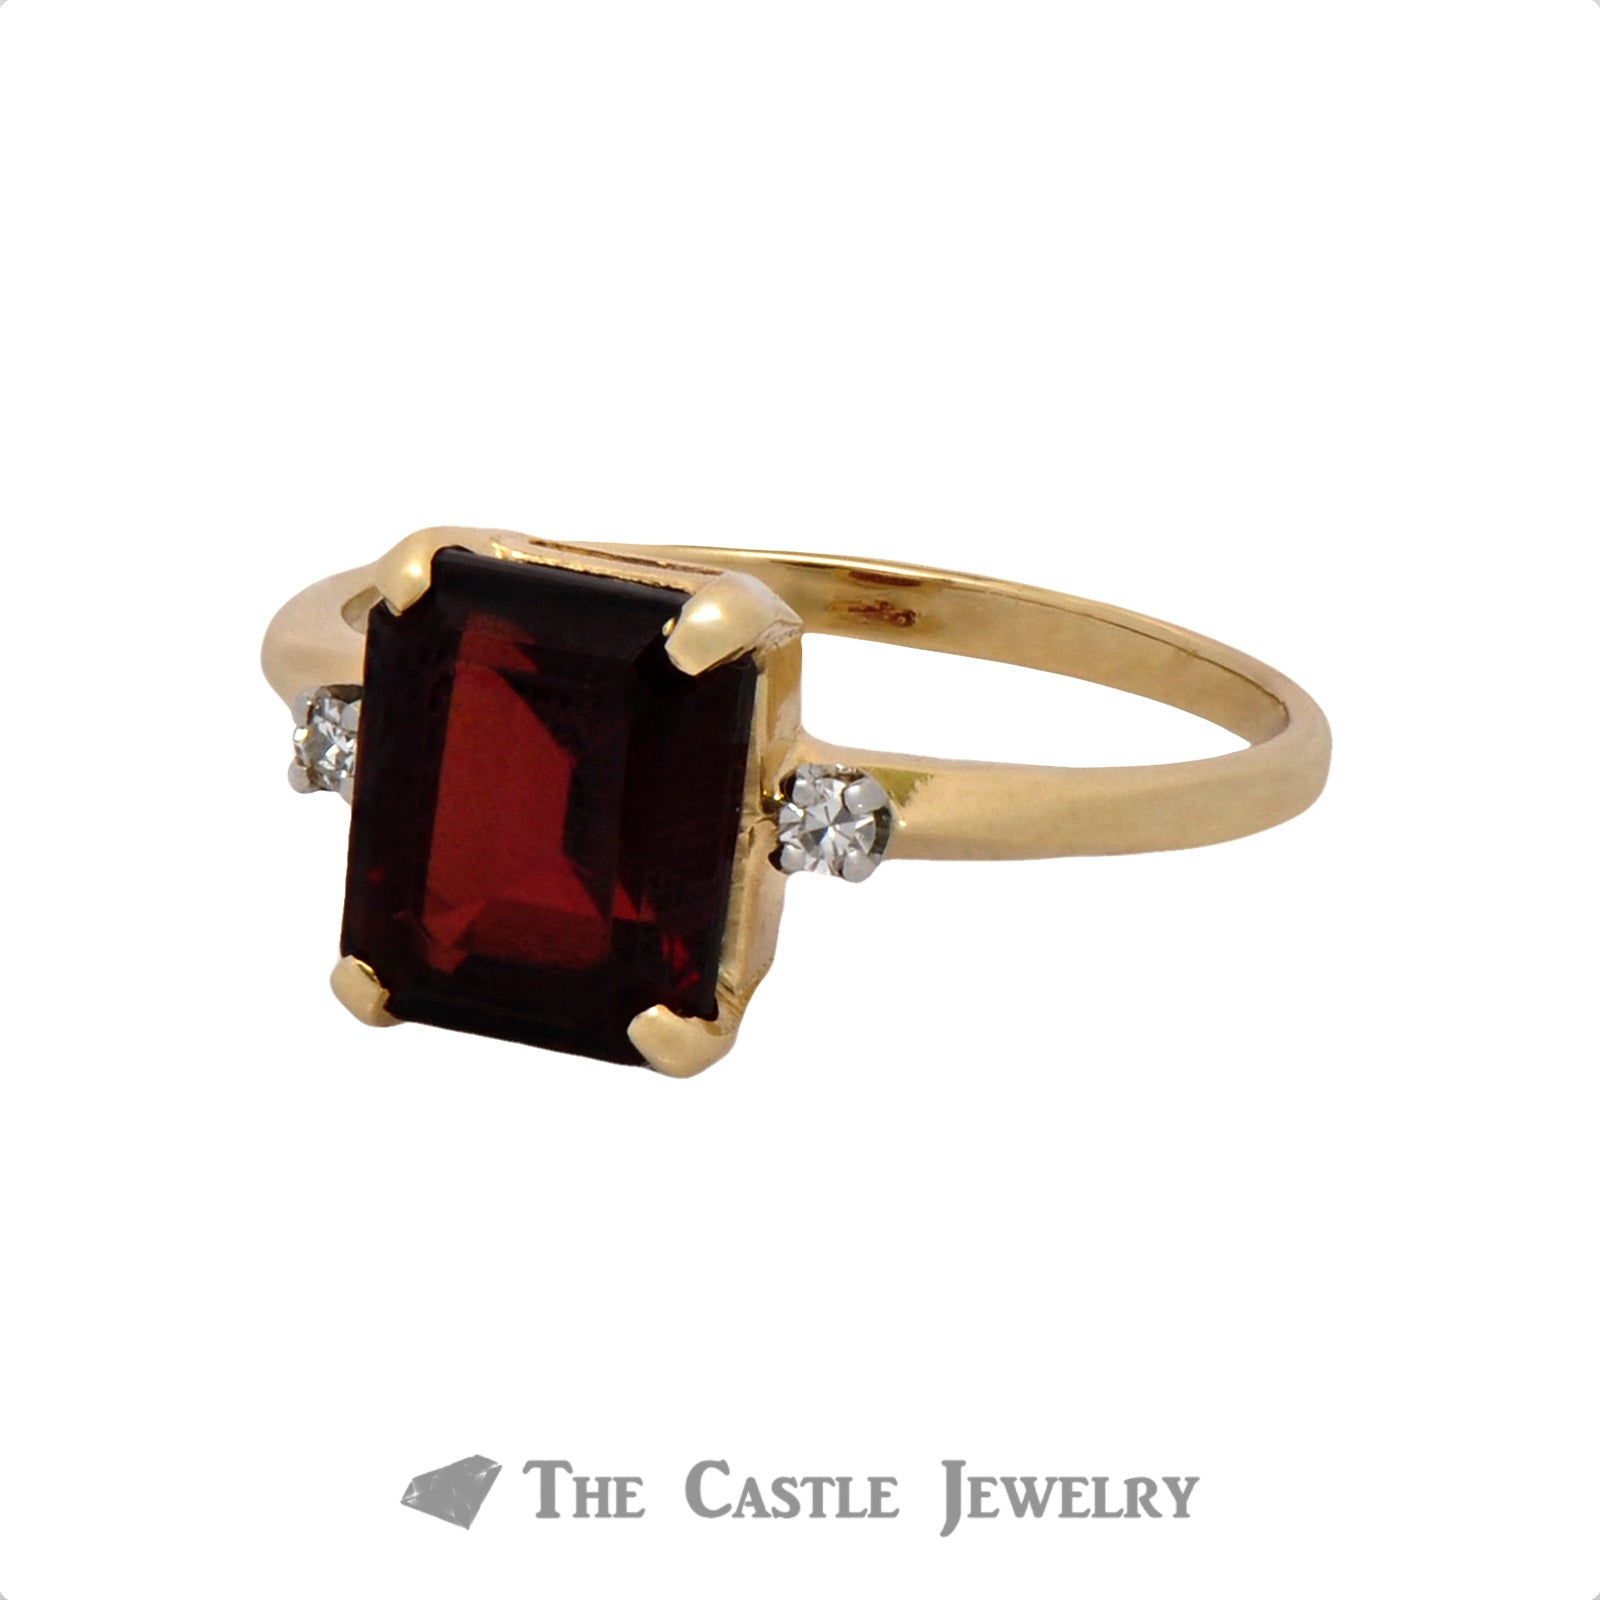 Emerald Cut Garnet Ring with Diamond Accents in 14K Gold-2